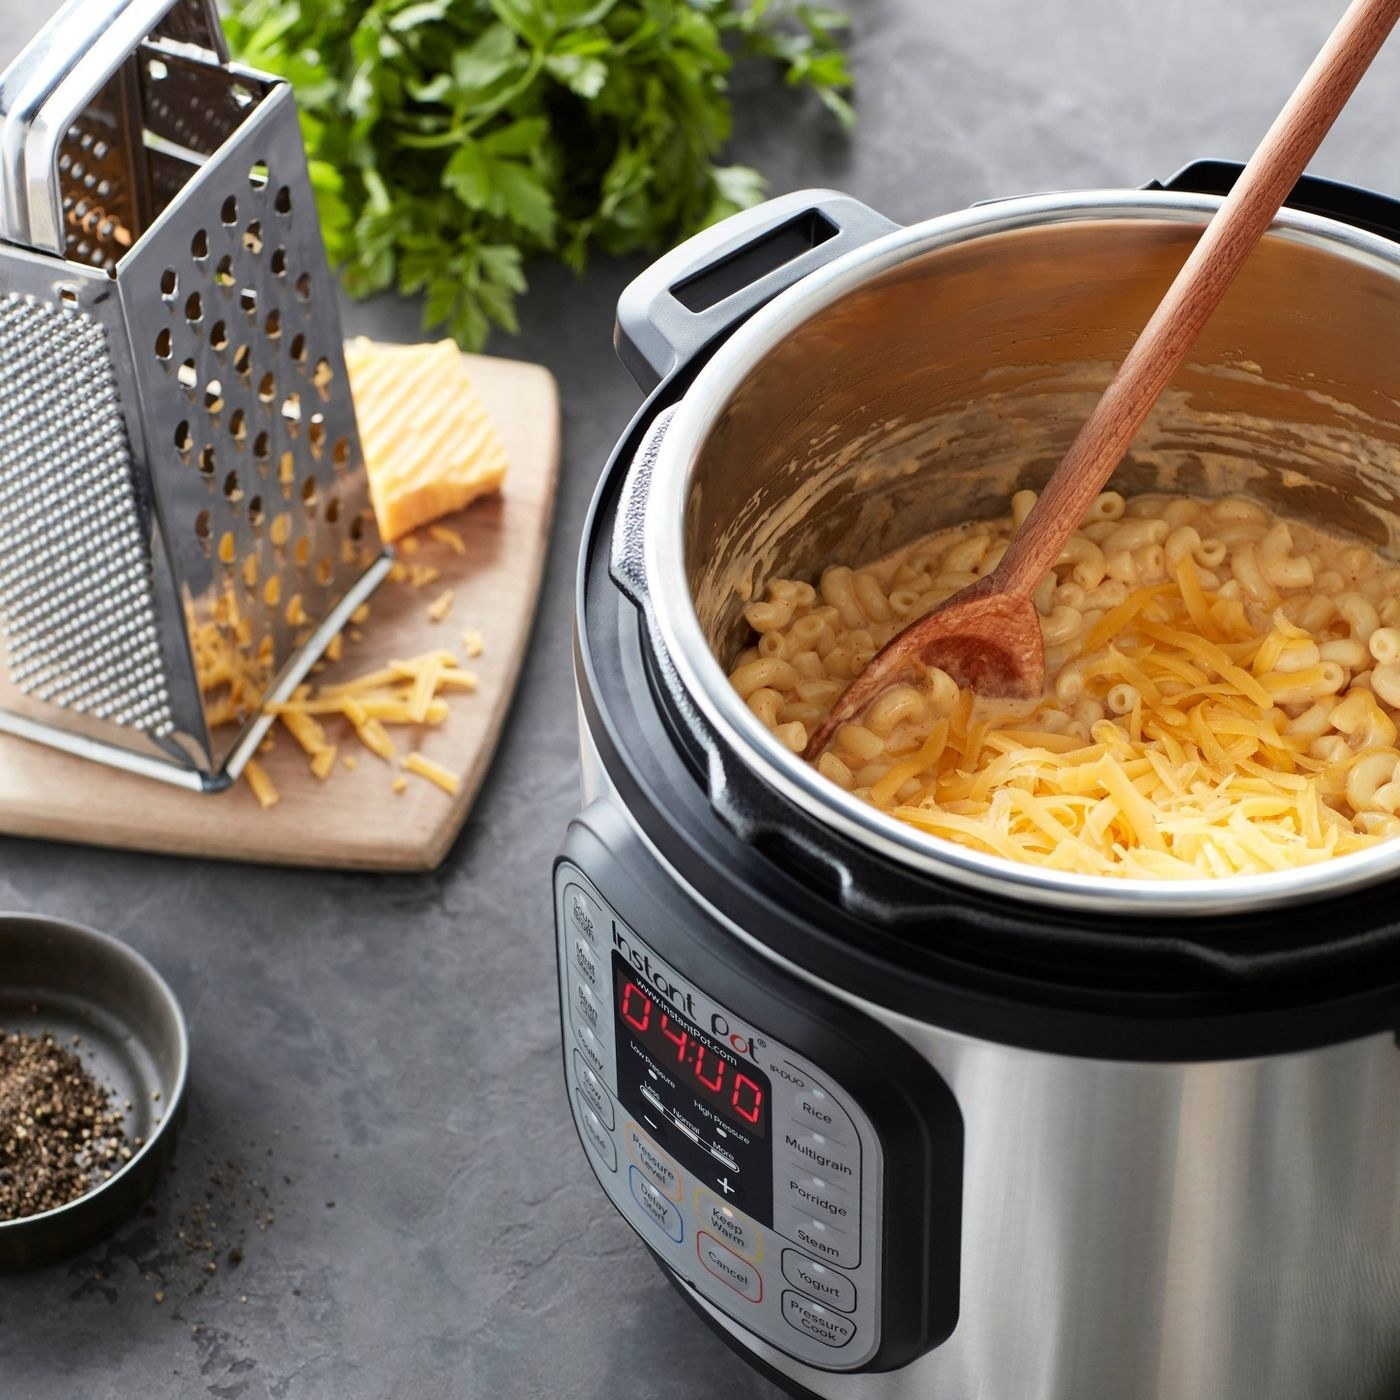 The Instant Pot Du cooking mac and cheese